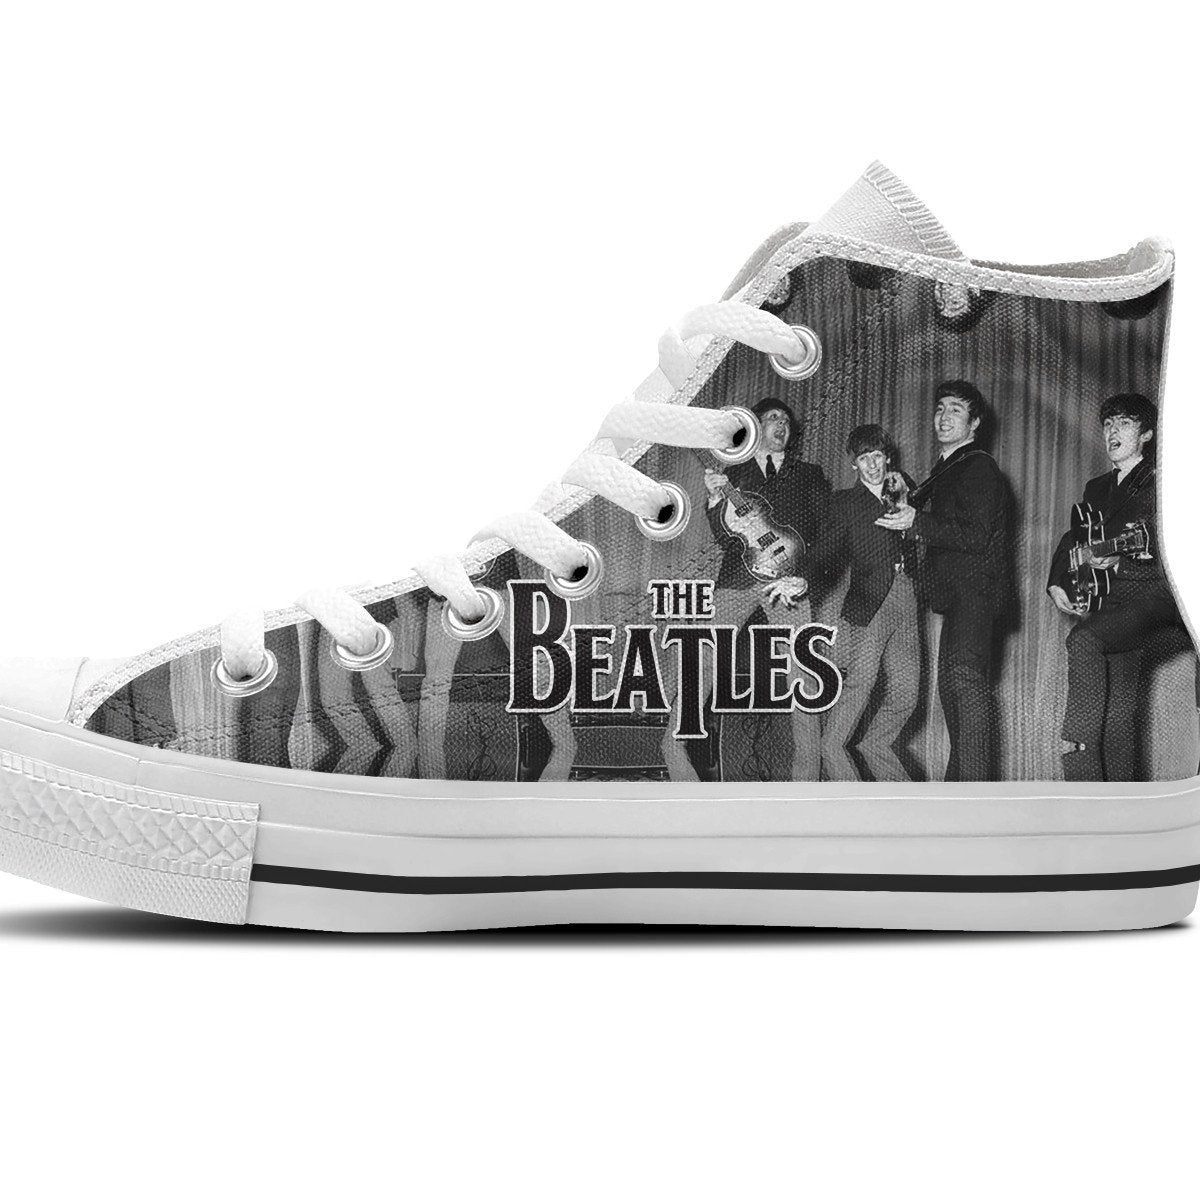 the beatles mens high top sneakers